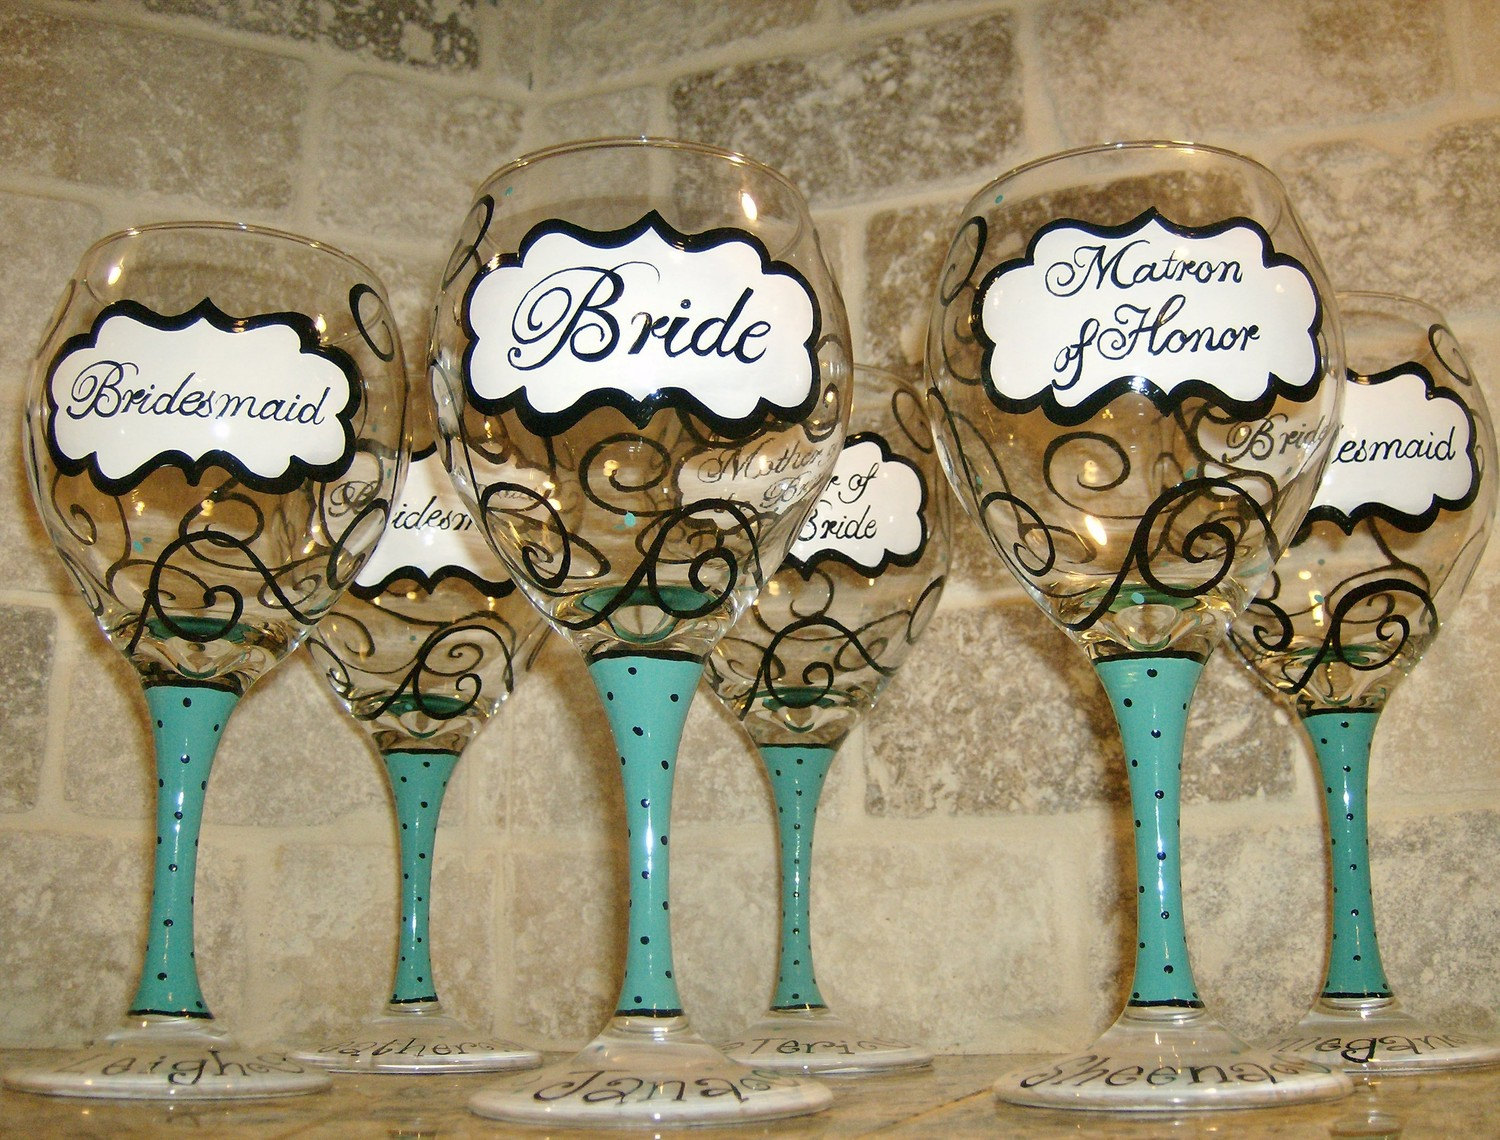 How to decorate wine glasses for bridesmaids - Helpful